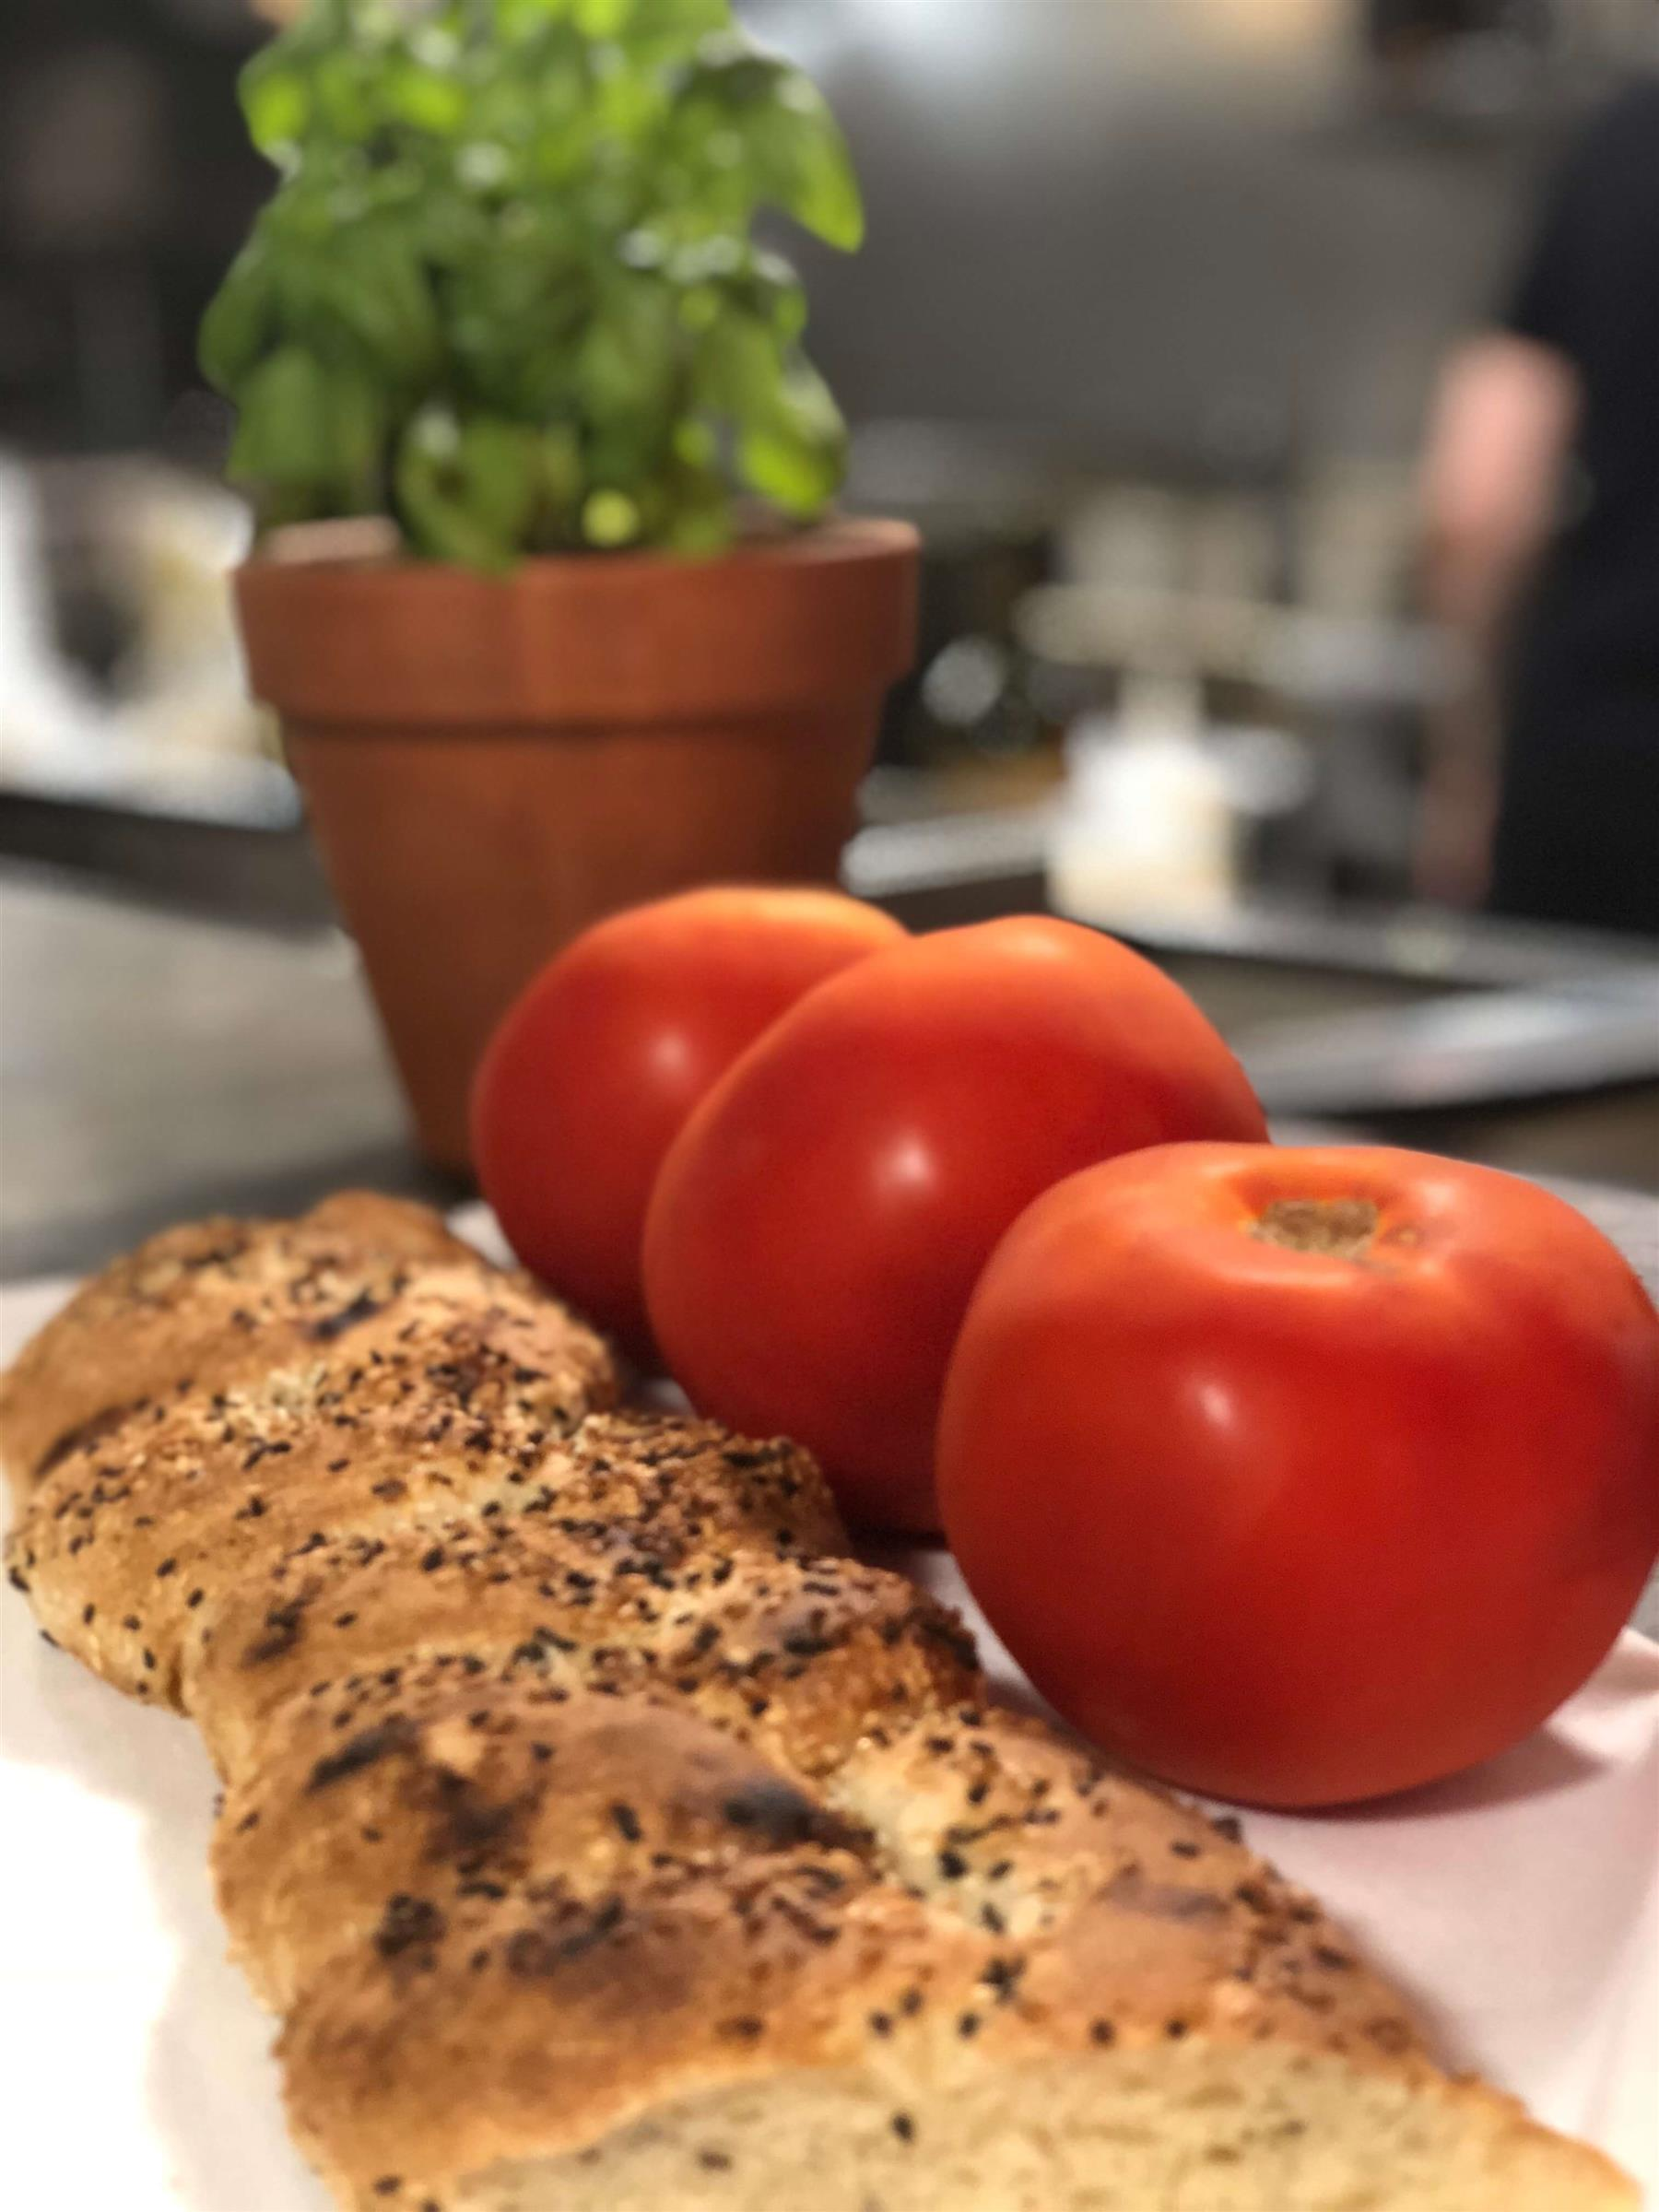 Tomatoes and garlic bread